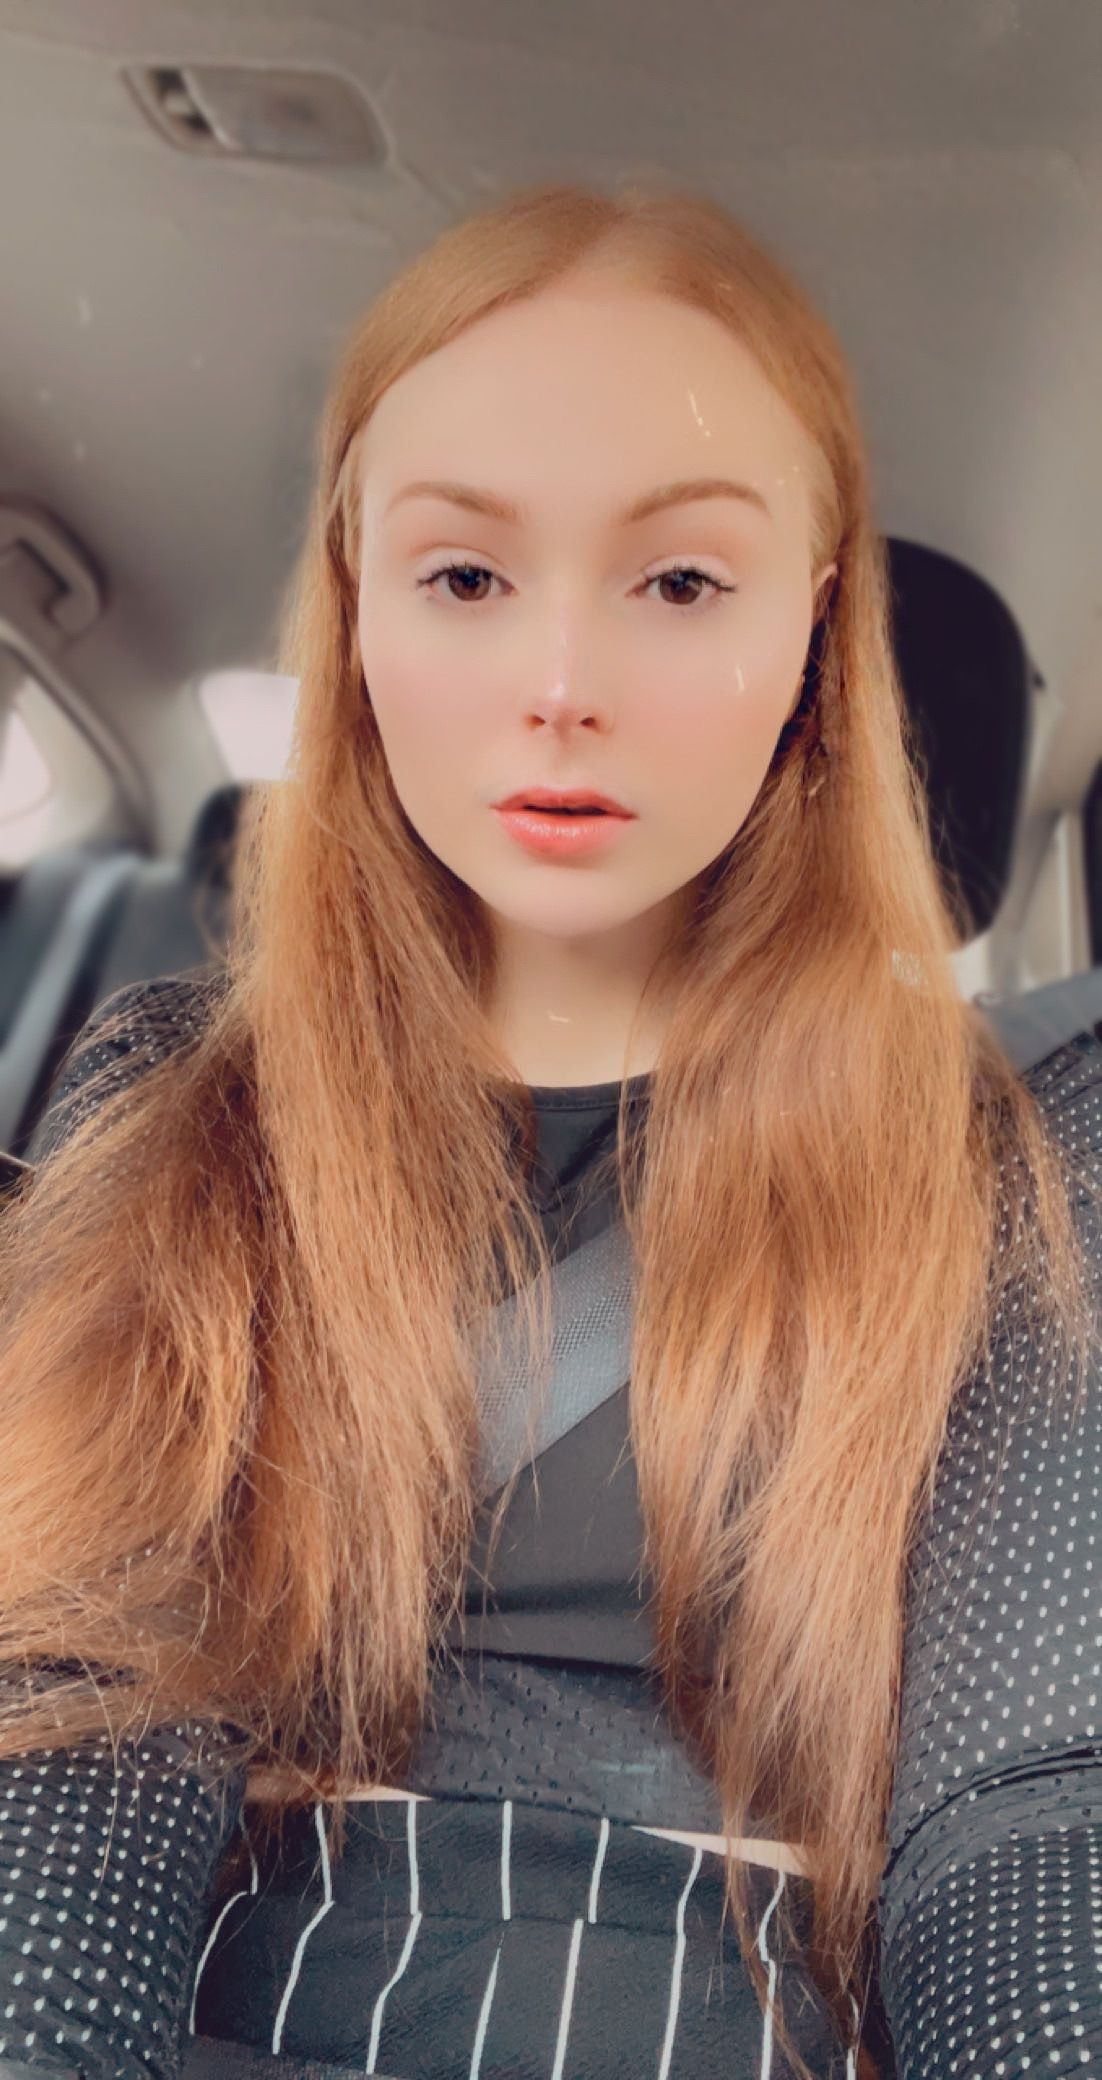 Onlyfans free Shy_trans onlyfans leaked